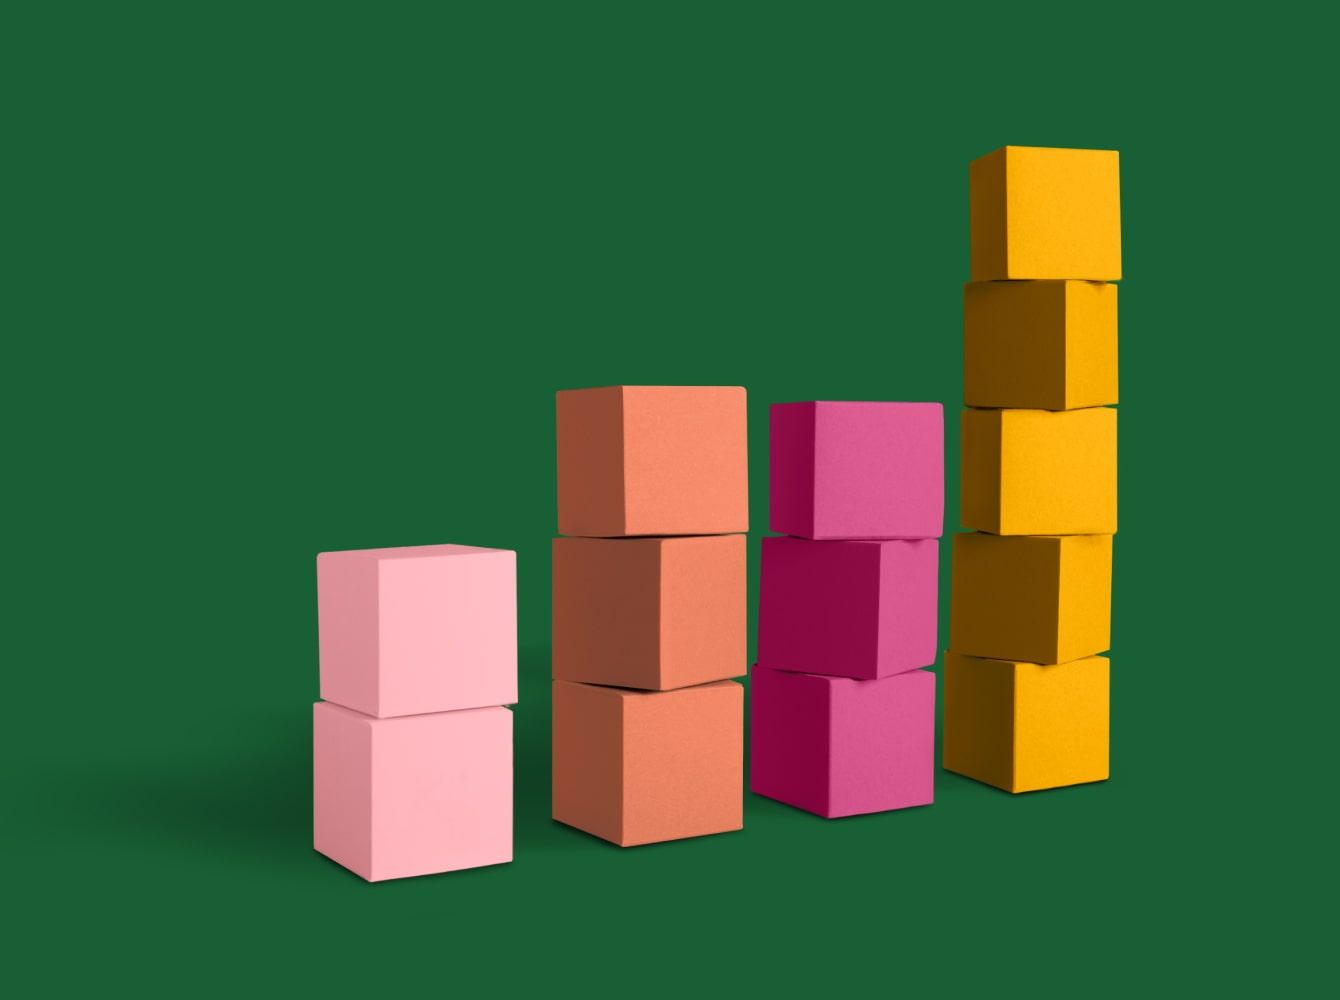 Colorful blocks representing financial services